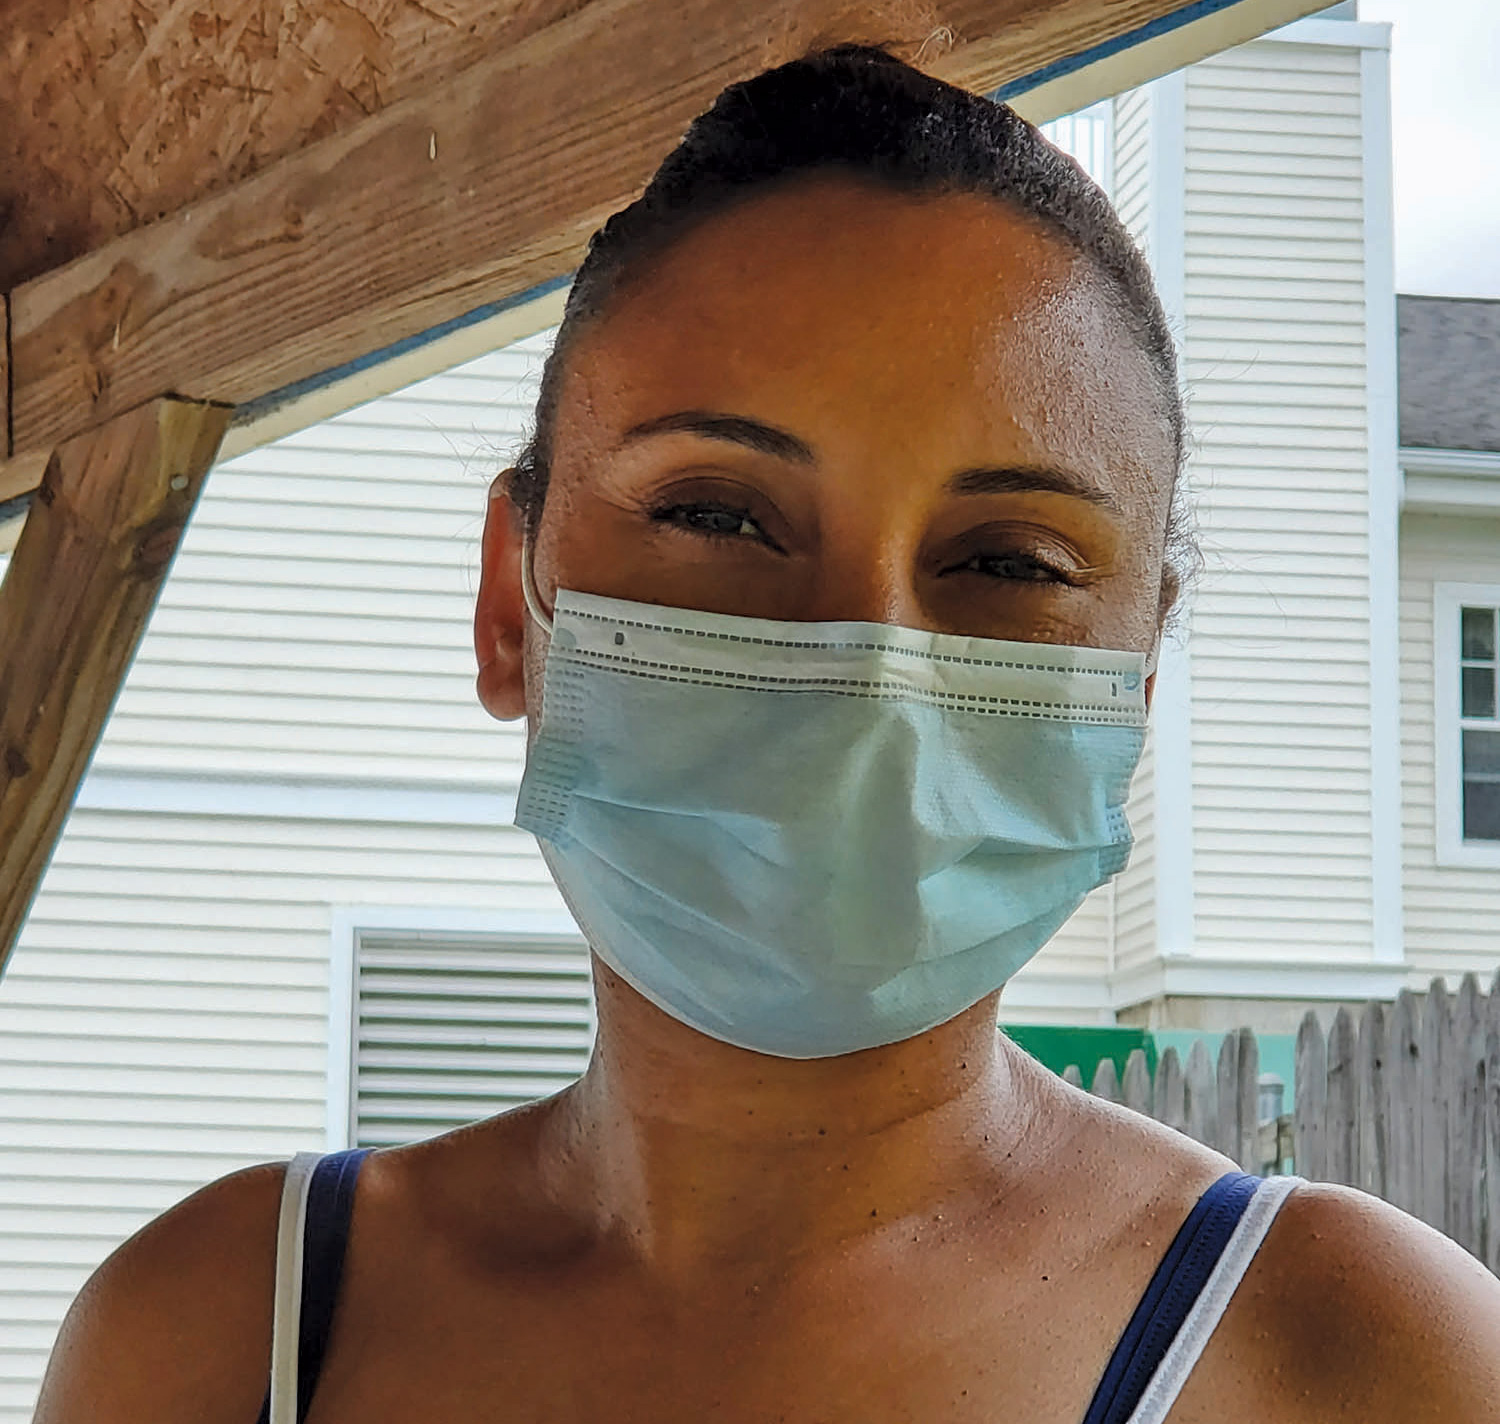 Adelina Ramos is a certified nurse's aide who works at a nursing home in Rhode Island